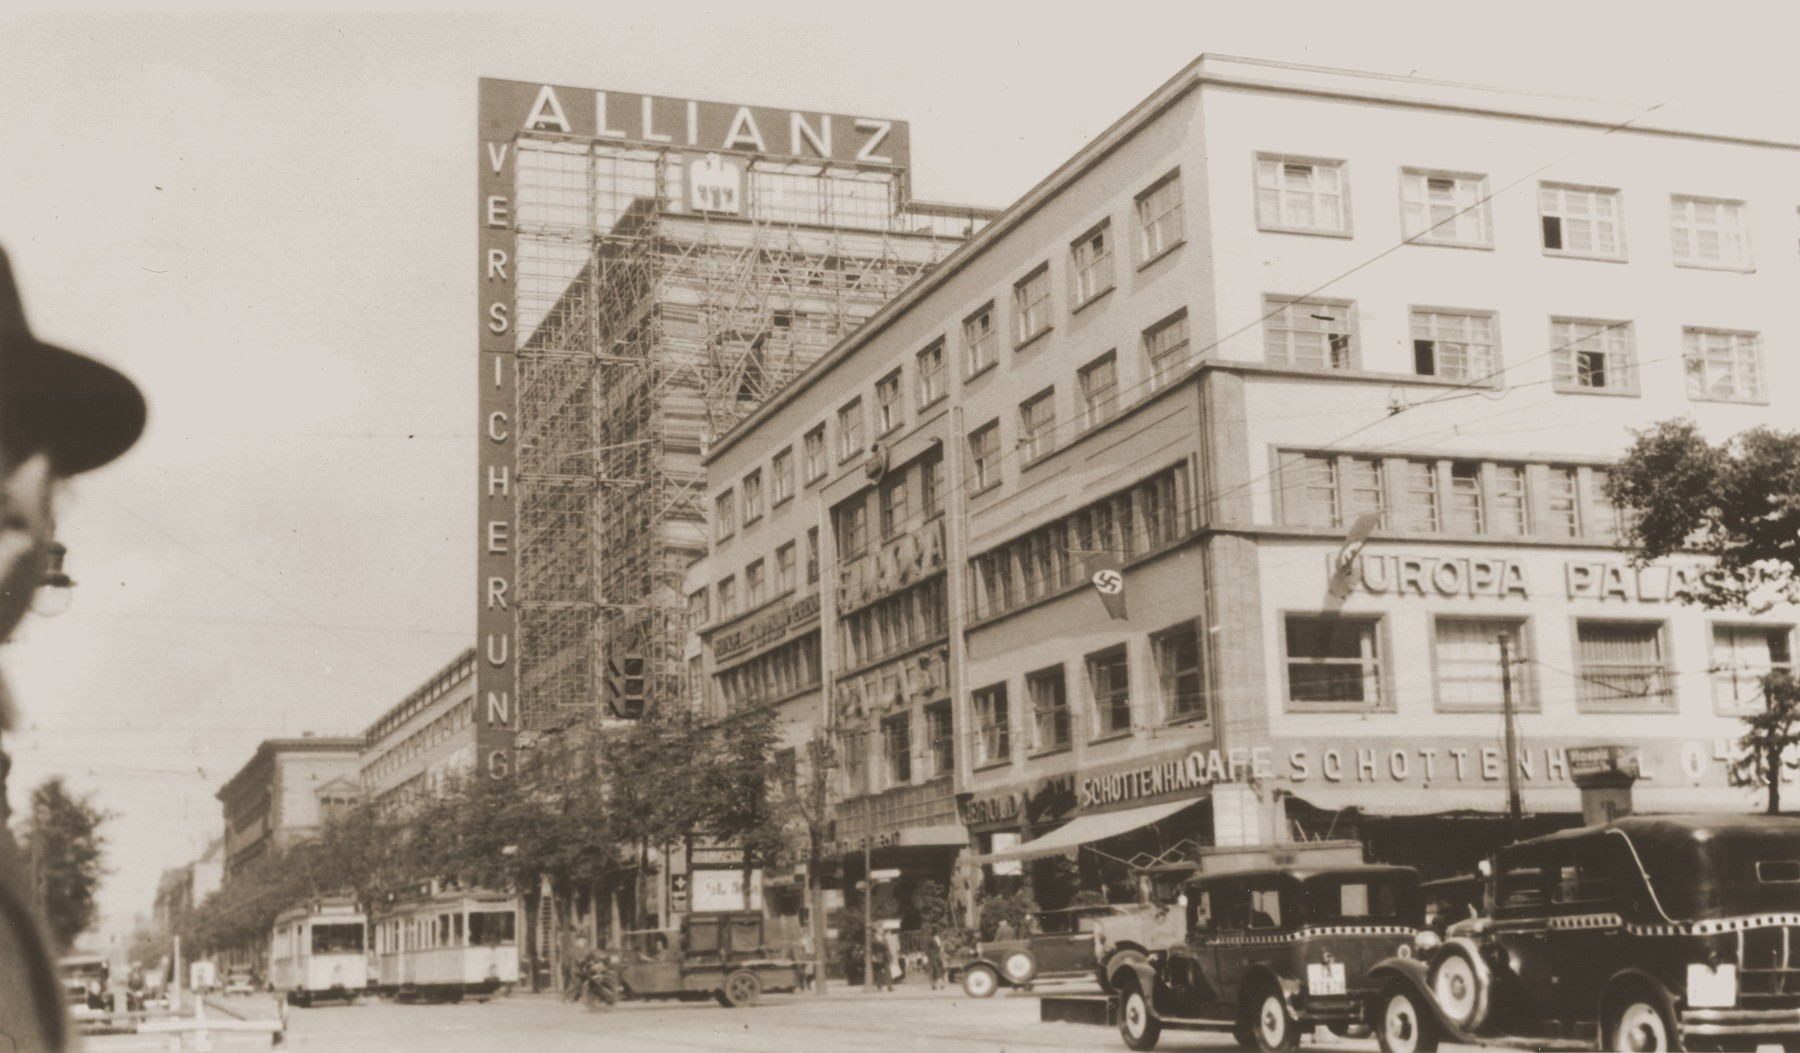 View of the Allianz insurance company building on the Saarlandstrasse under reconstruction during the Nazi period.